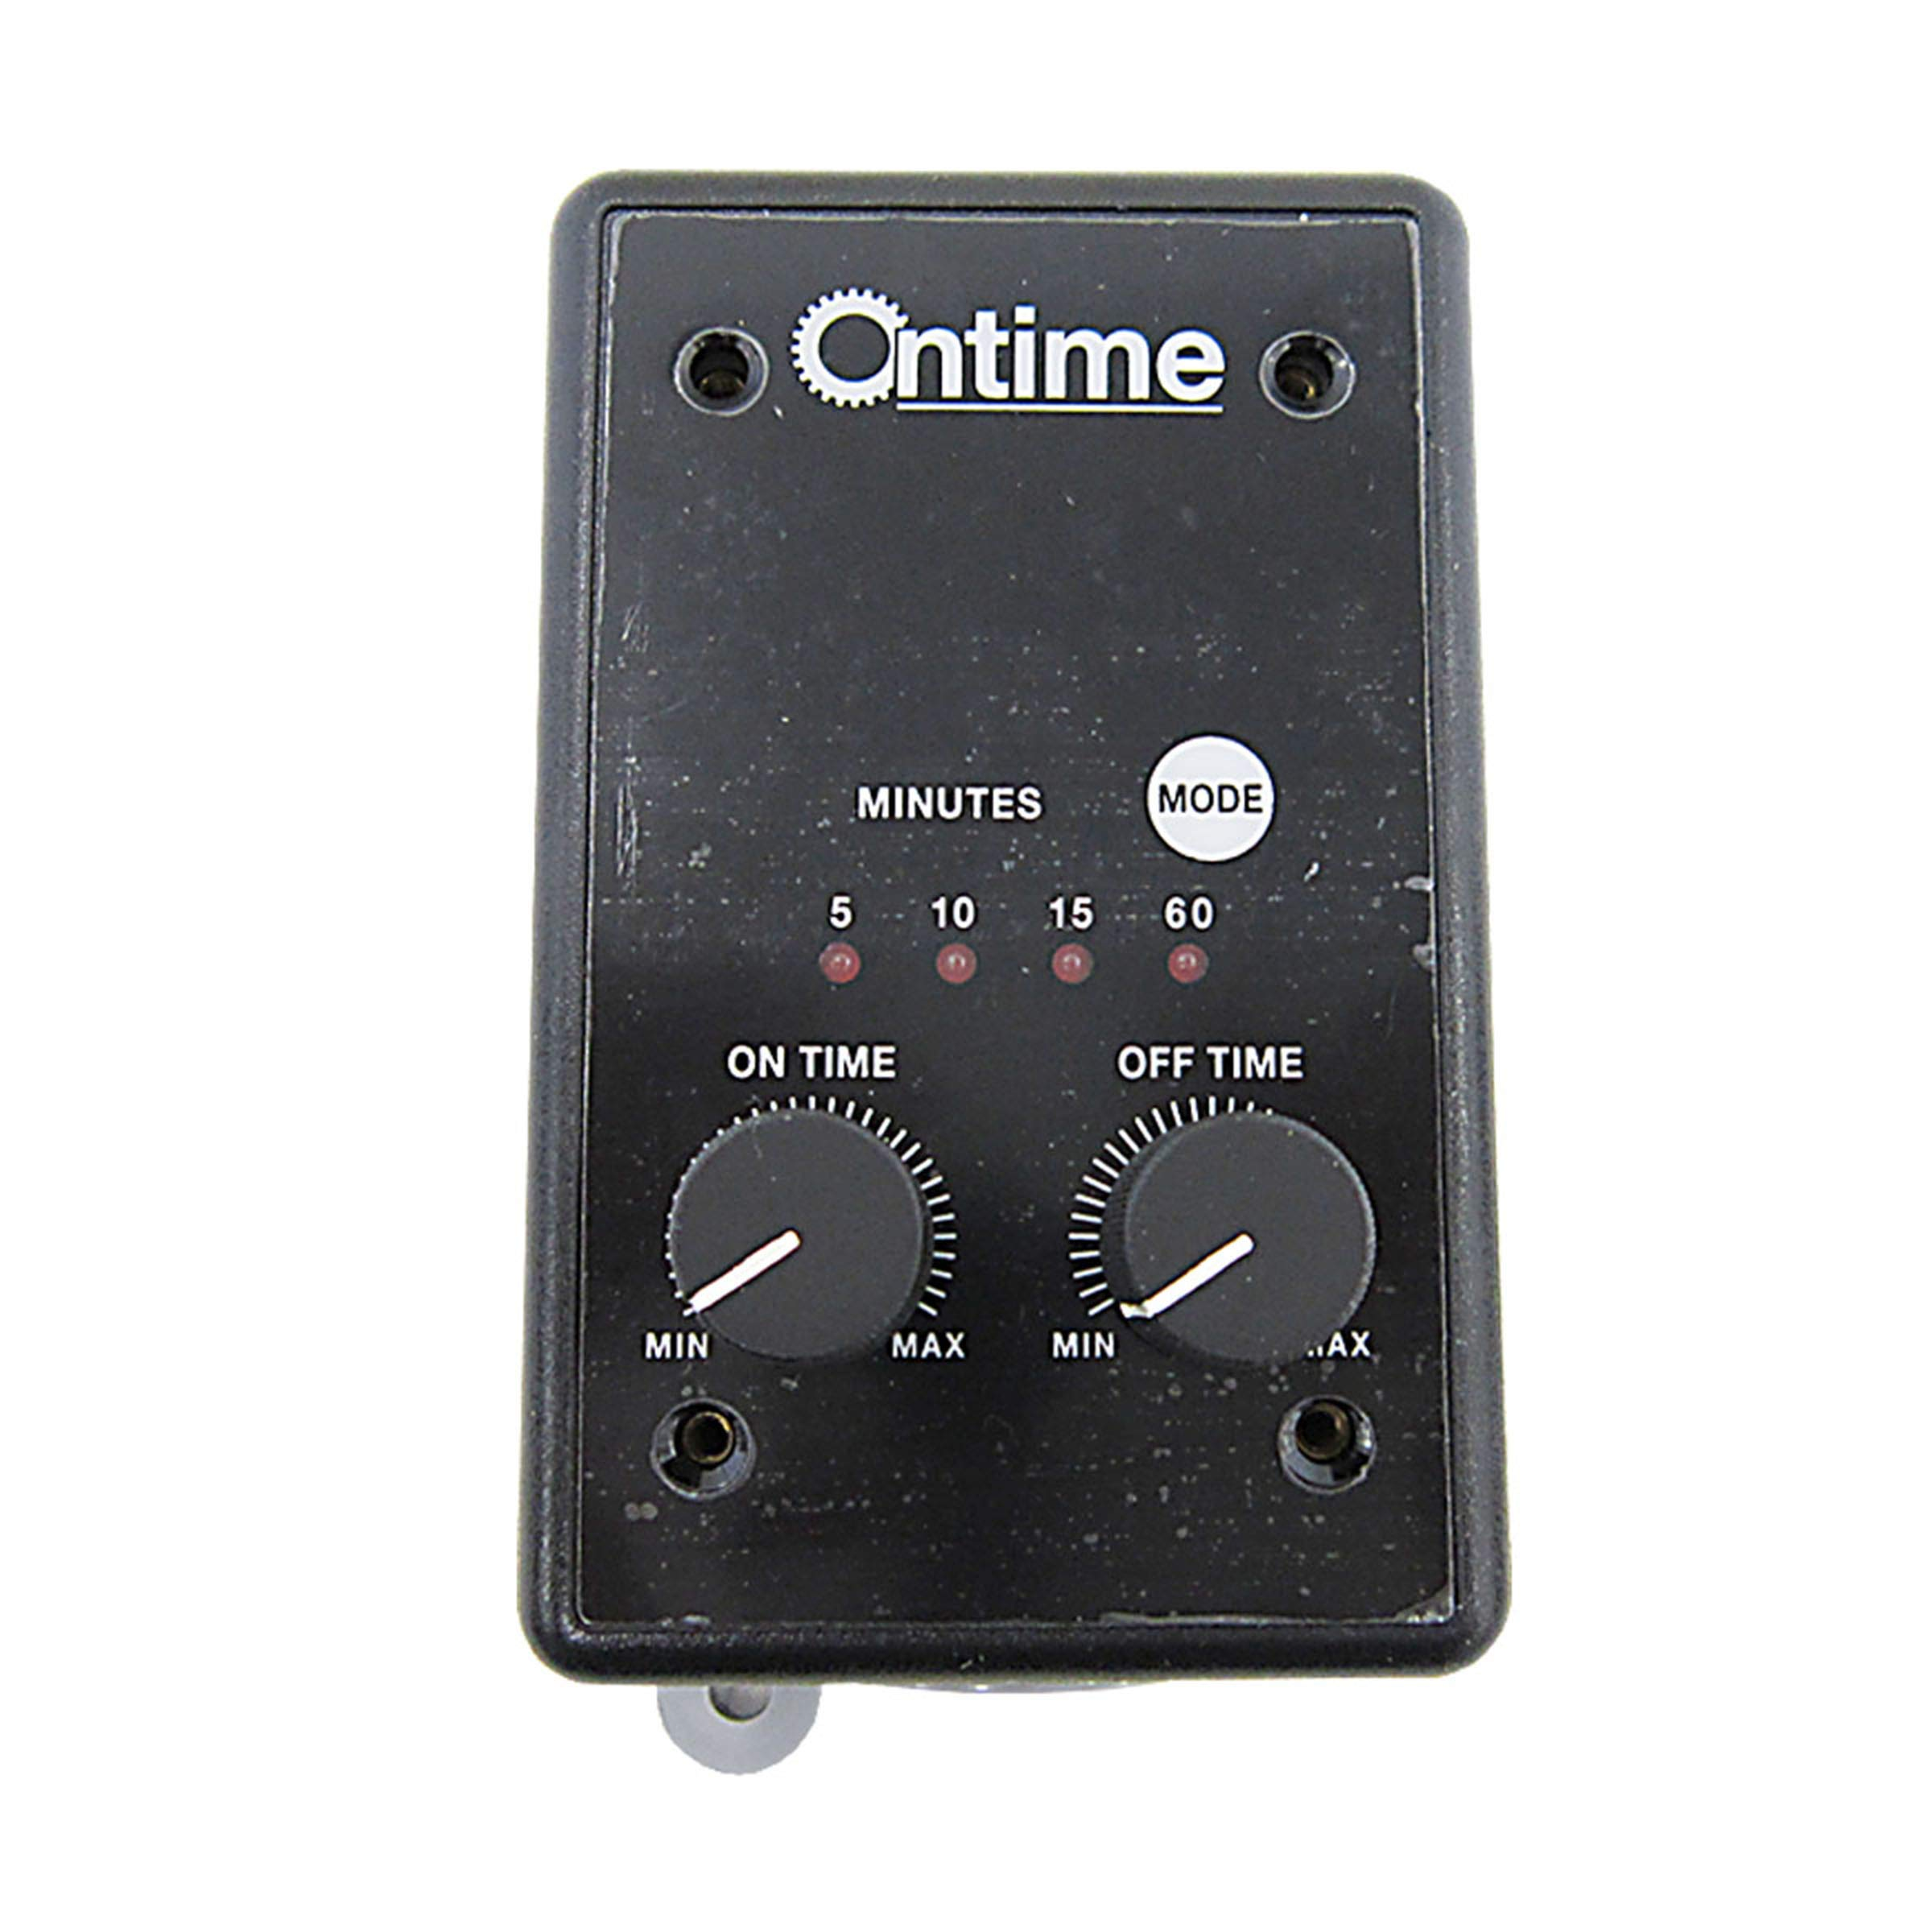 mistcooling Interval Timer by mistcooling